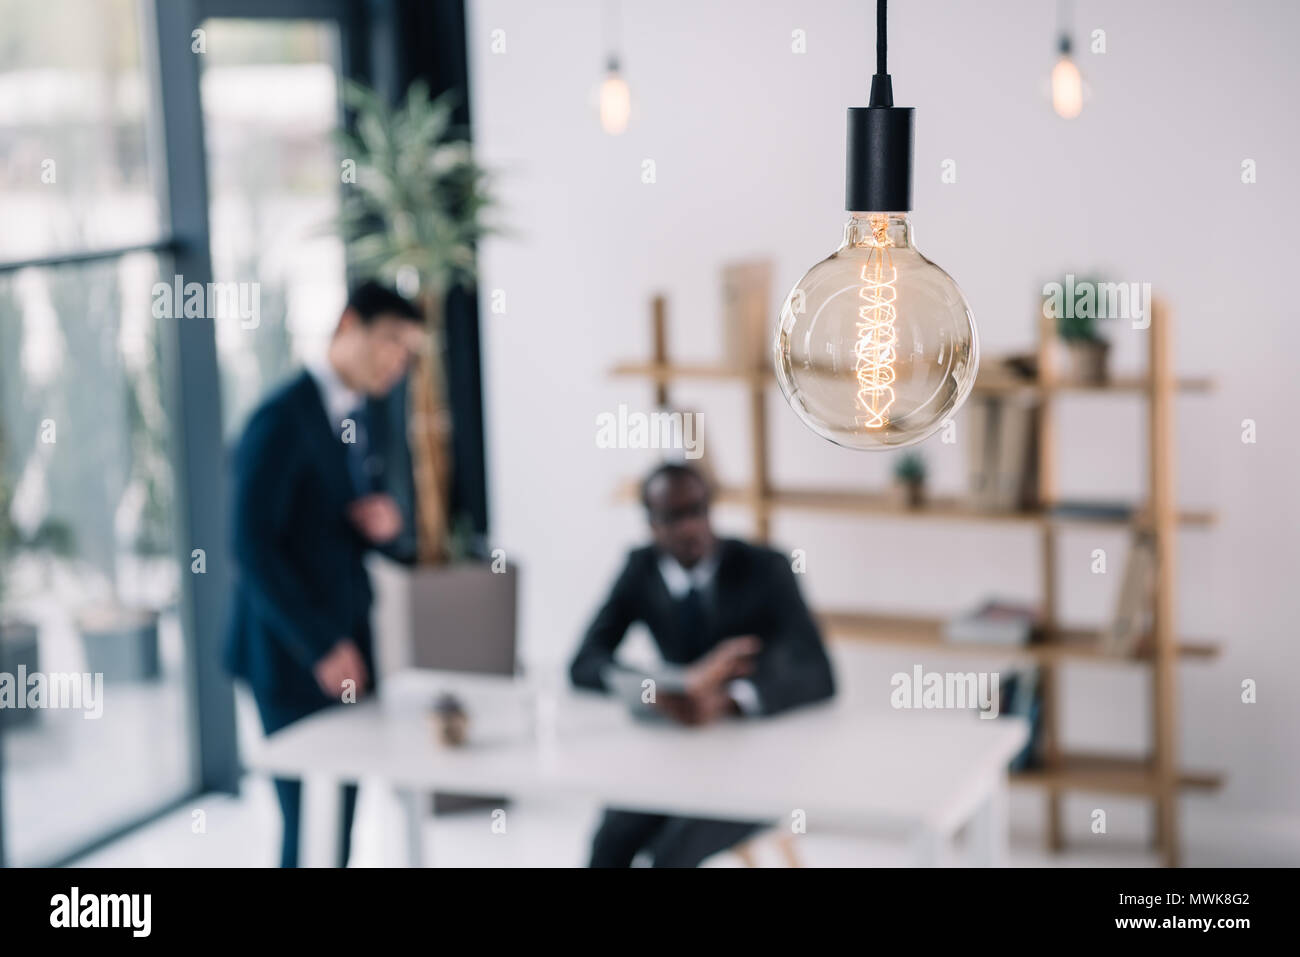 vintage lamp with business colleagues sitting in modern office blurred on background - Stock Image